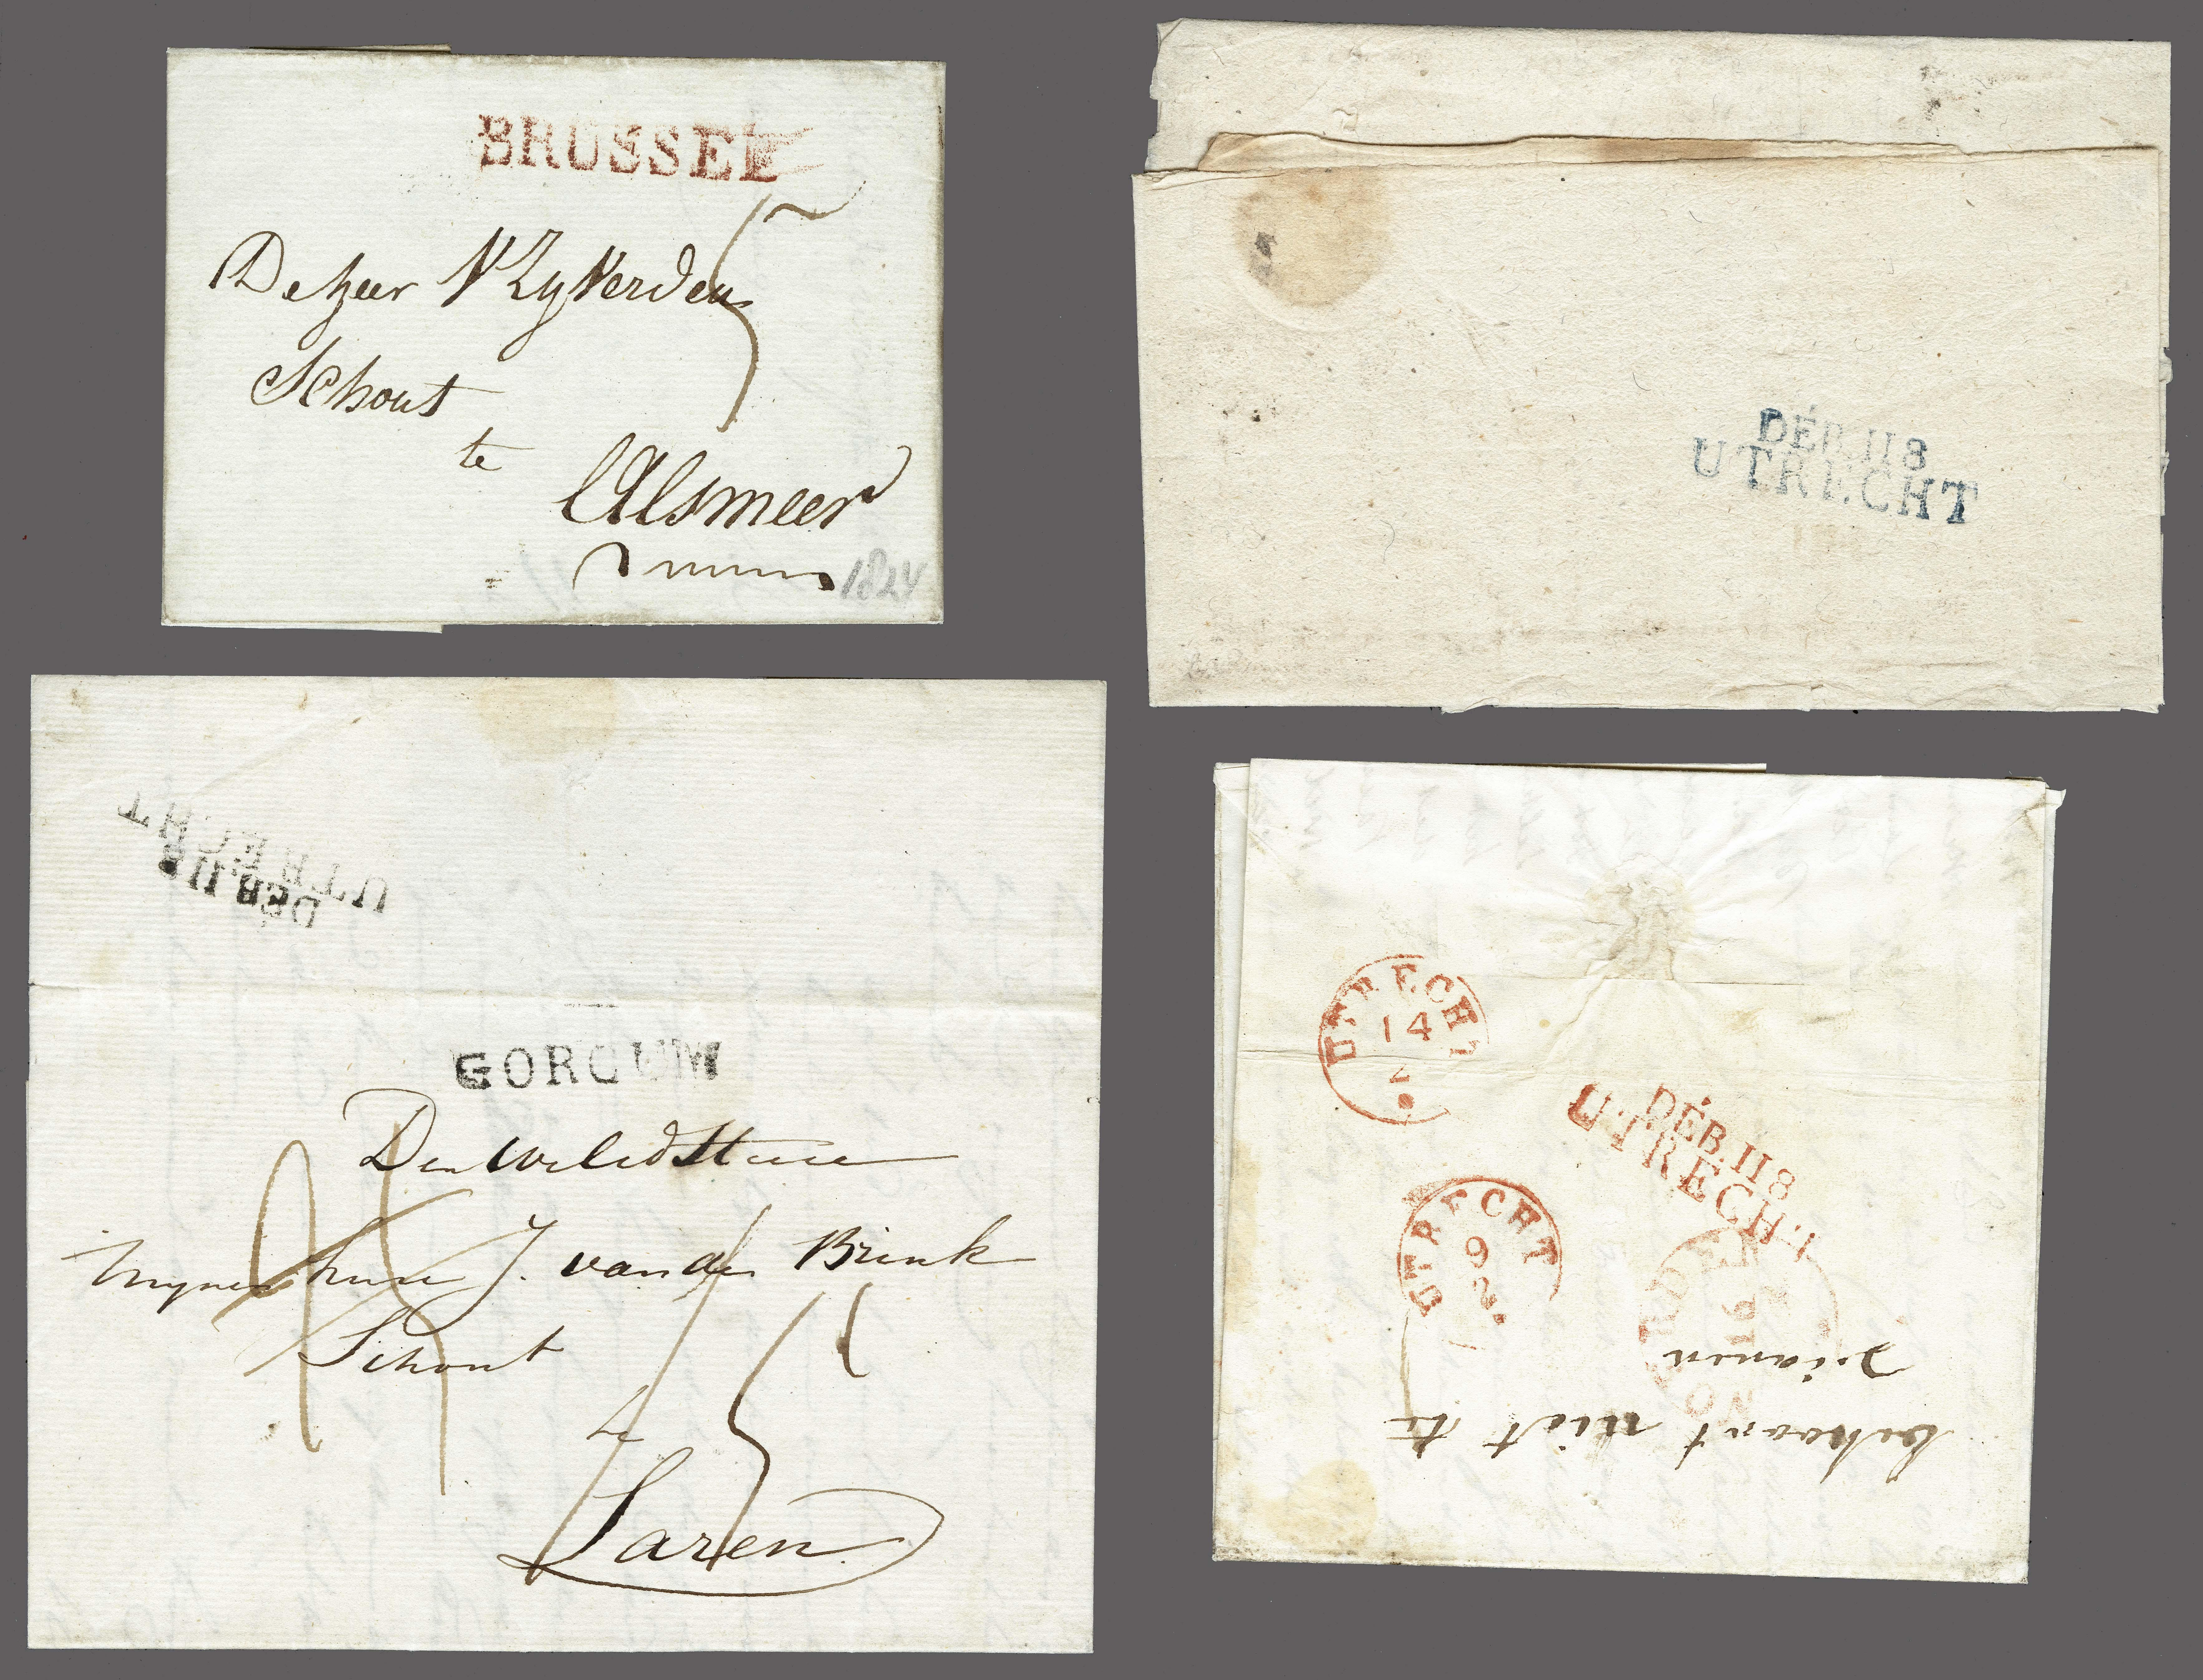 Lot 2421 - Netherlands and former colonies Netherlands -  Corinphila Veilingen Auction 250-253 - Day 3 - Netherlands and former colonies - Single lots & Picture postcards